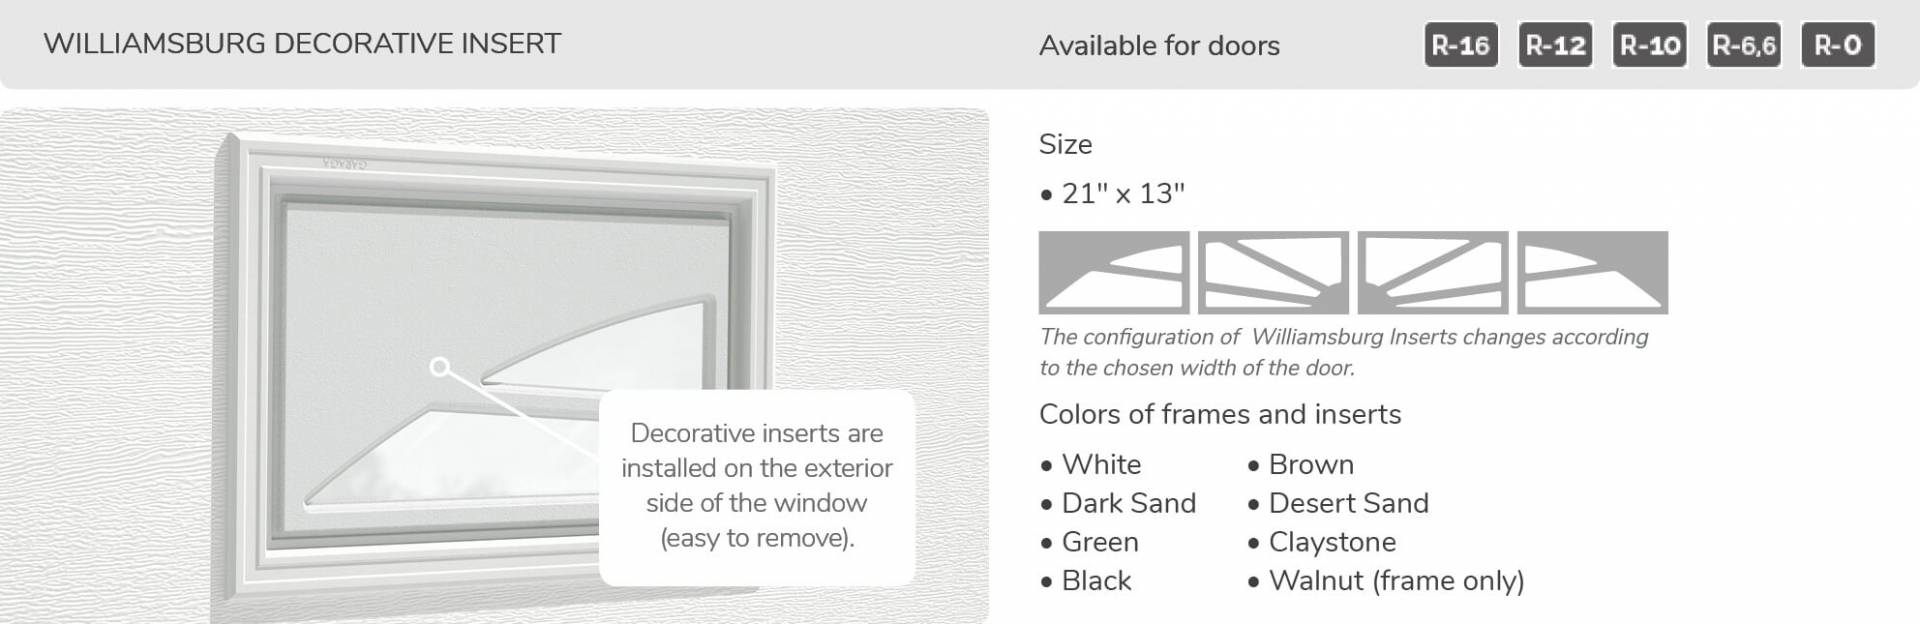 Williamsburg Decoratice Inserts, 21' x 13', available for doors R-16, R-12, R-10, R-6,6 and R-0